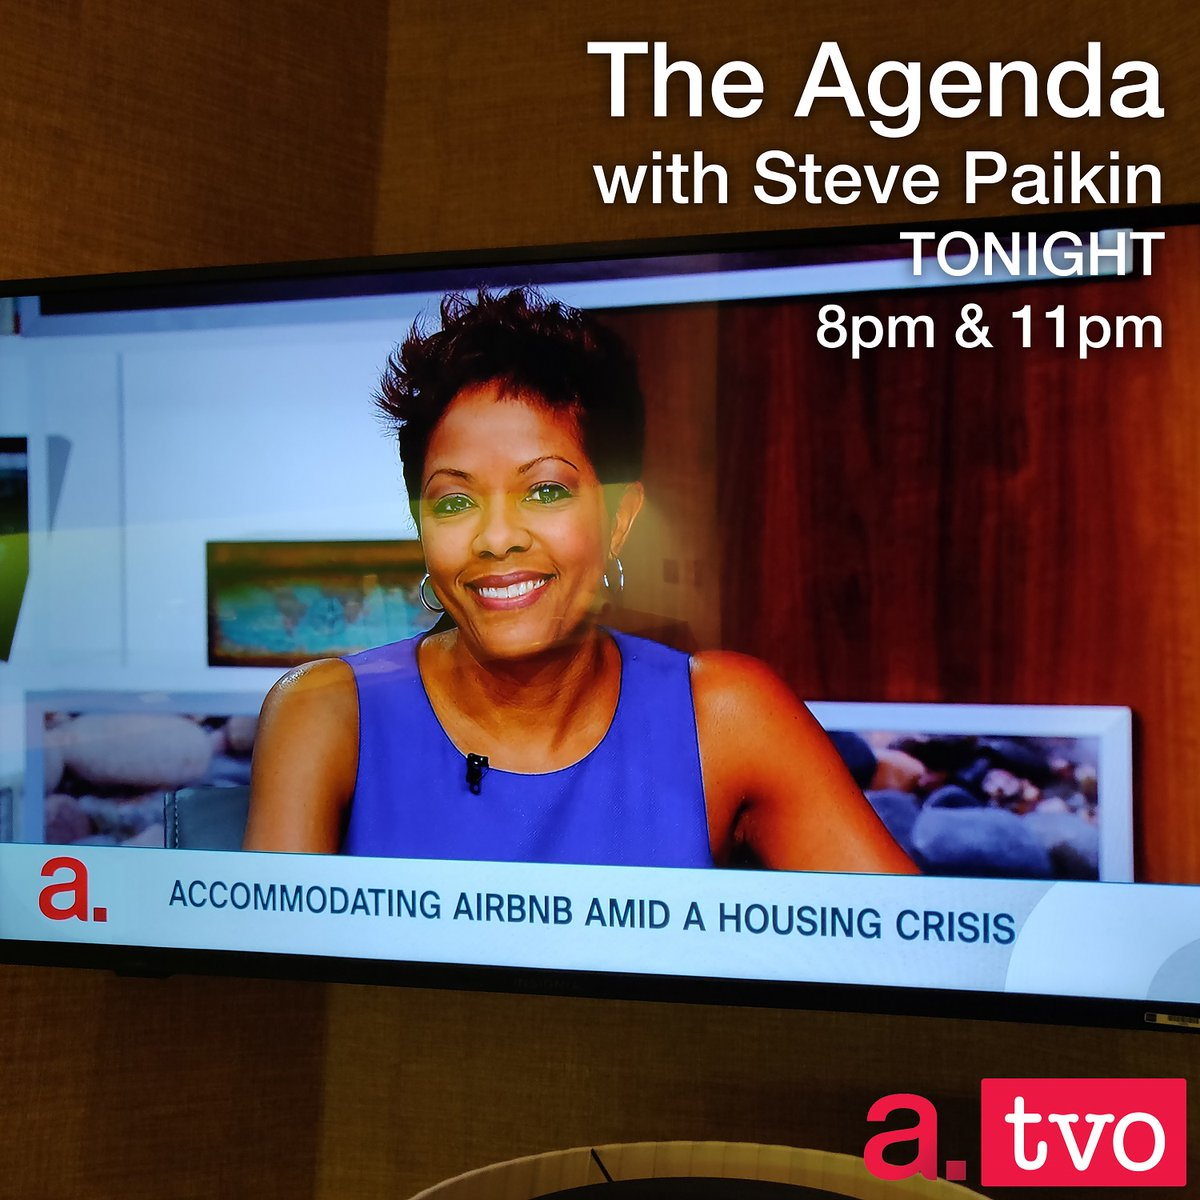 Tune into TVO's The Agenda with Steve Paikin tonight at 8pm and 11pm as I argue for AirBNB investing against 3 naysayers.  #TVO #TheAgenda #StevePaikin pic.twitter.com/iQS5dwf8y6